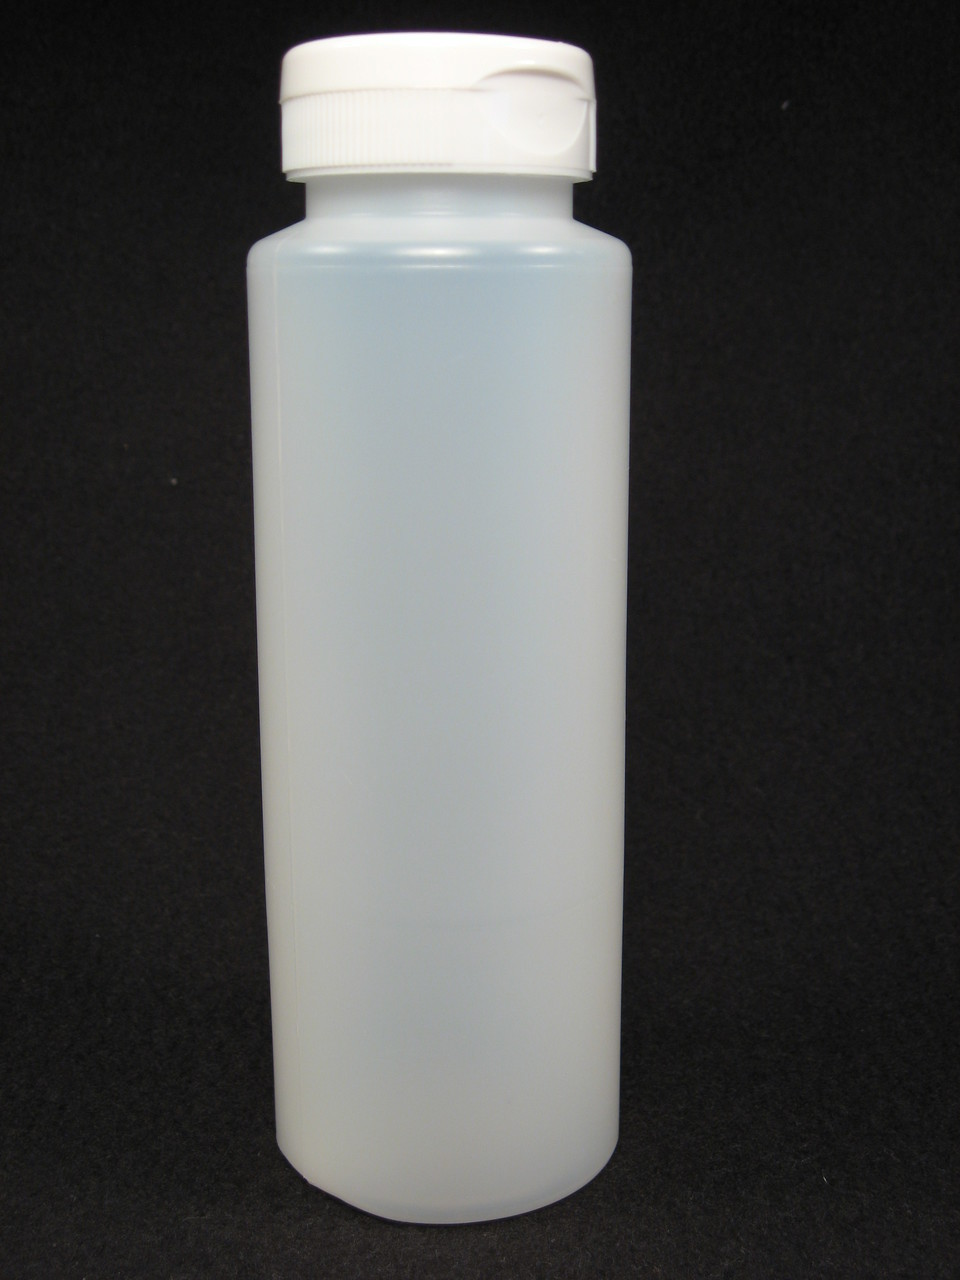 12 oz. Cylinder honey bottles - case of 350 with white flip top lids